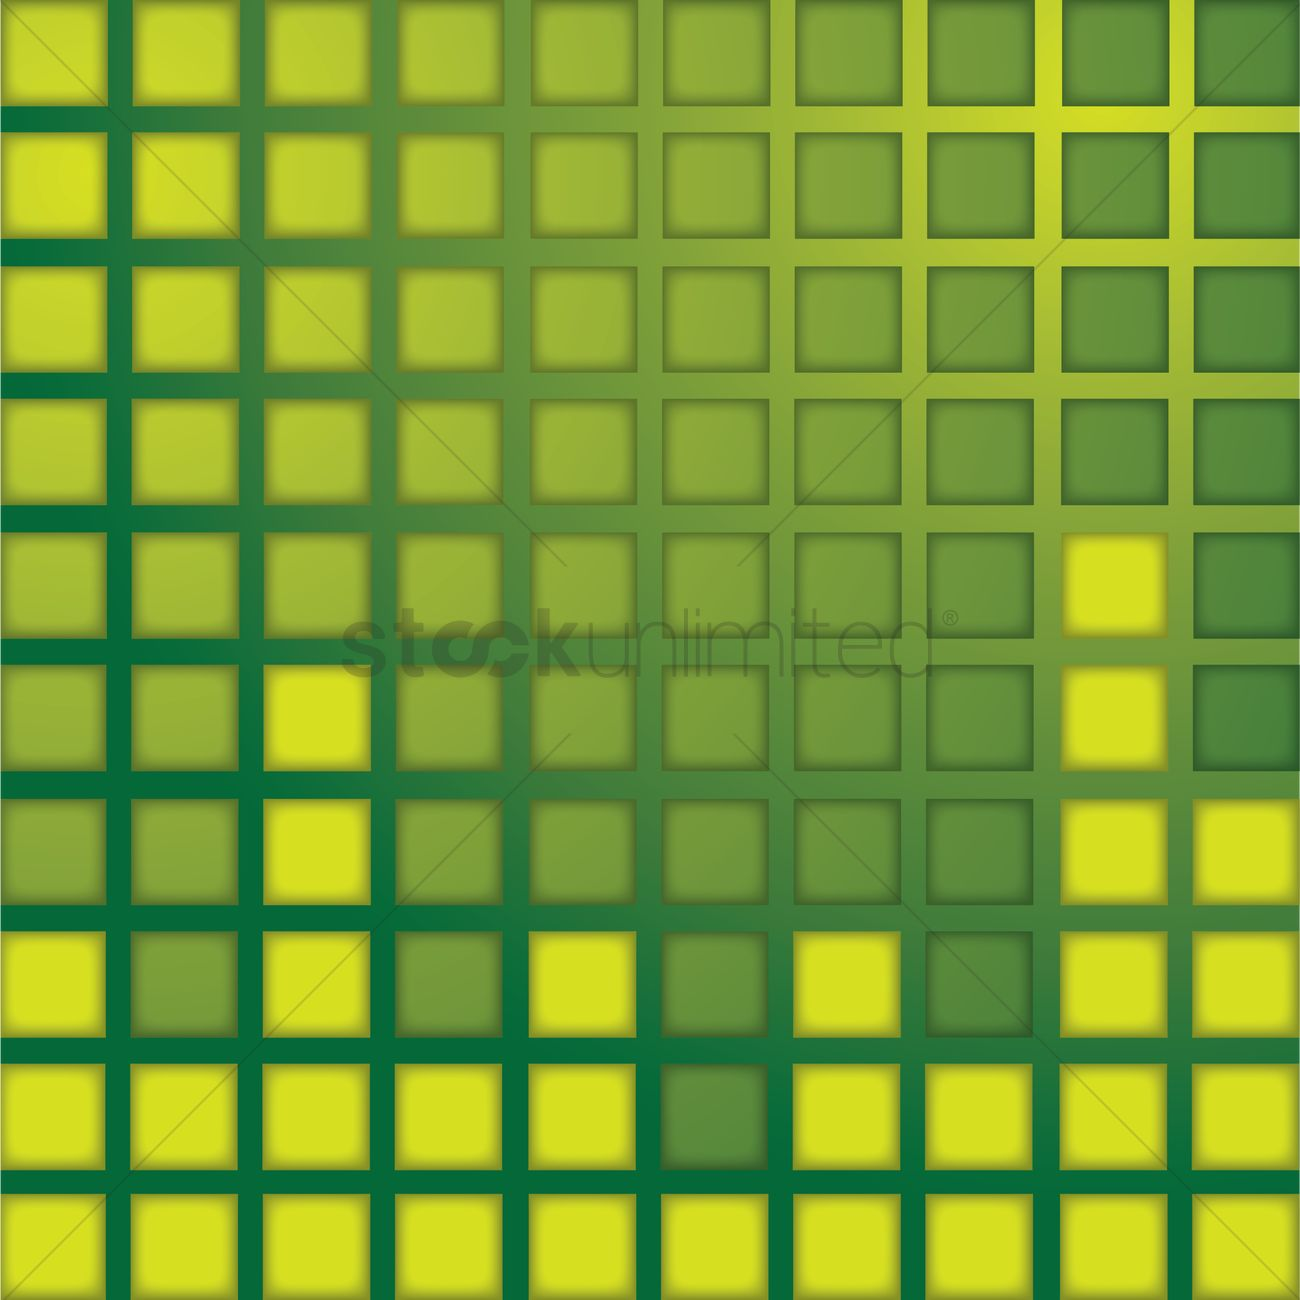 Free Equalizer background Vector Image - 1280555 | StockUnlimited